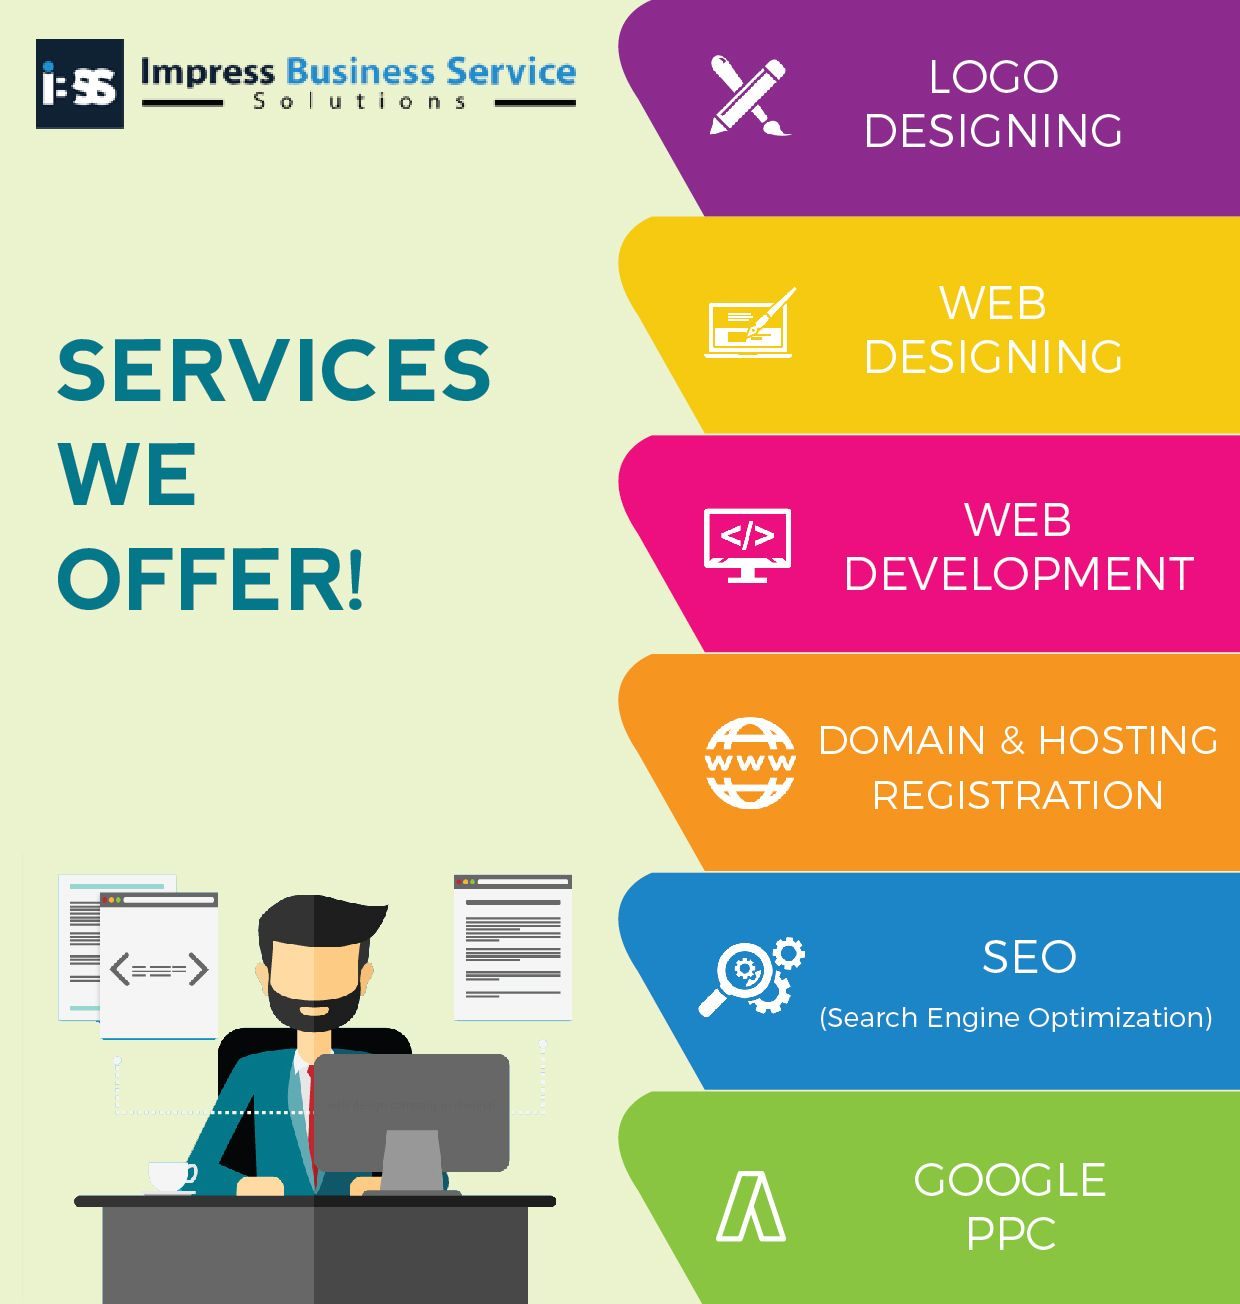 Pin By Impressbss On Web Designing Company In Chennai Web Design Company Web Design Web Development Design